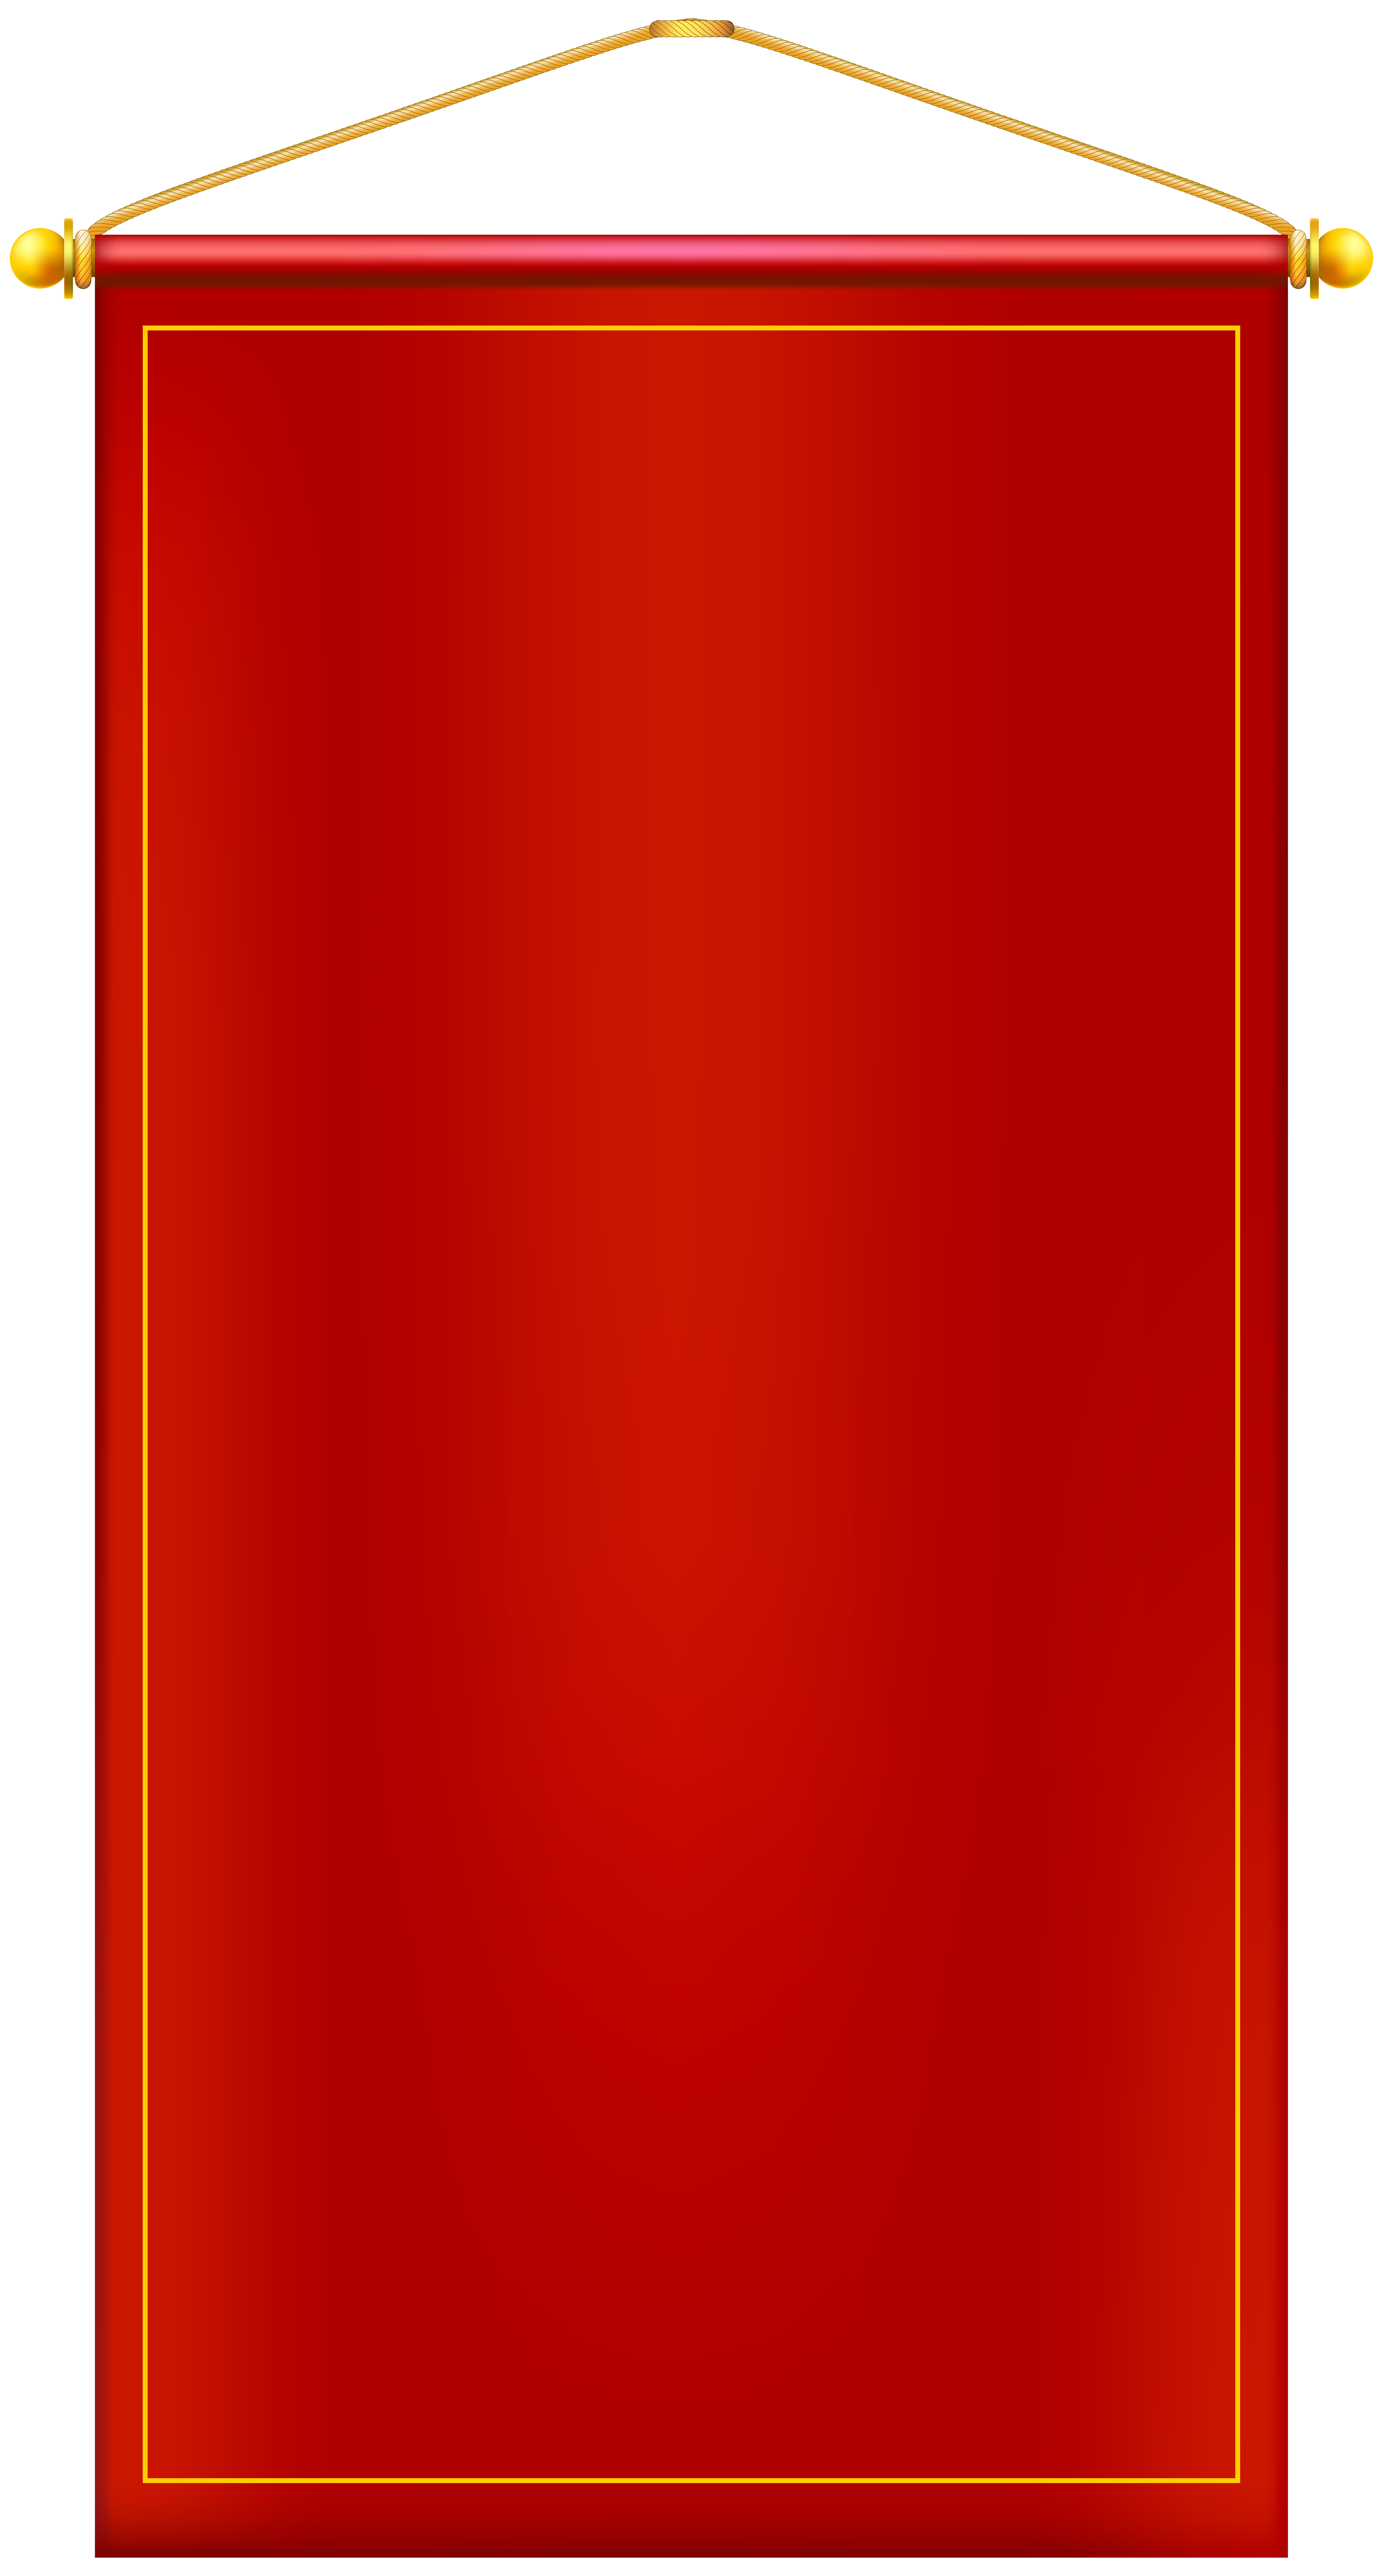 Vertical Red Banner Png Clip Art Image Gallery Yopriceville High Quality Images And Transpare Red Background Images Uhd Wallpaper Poster Background Design